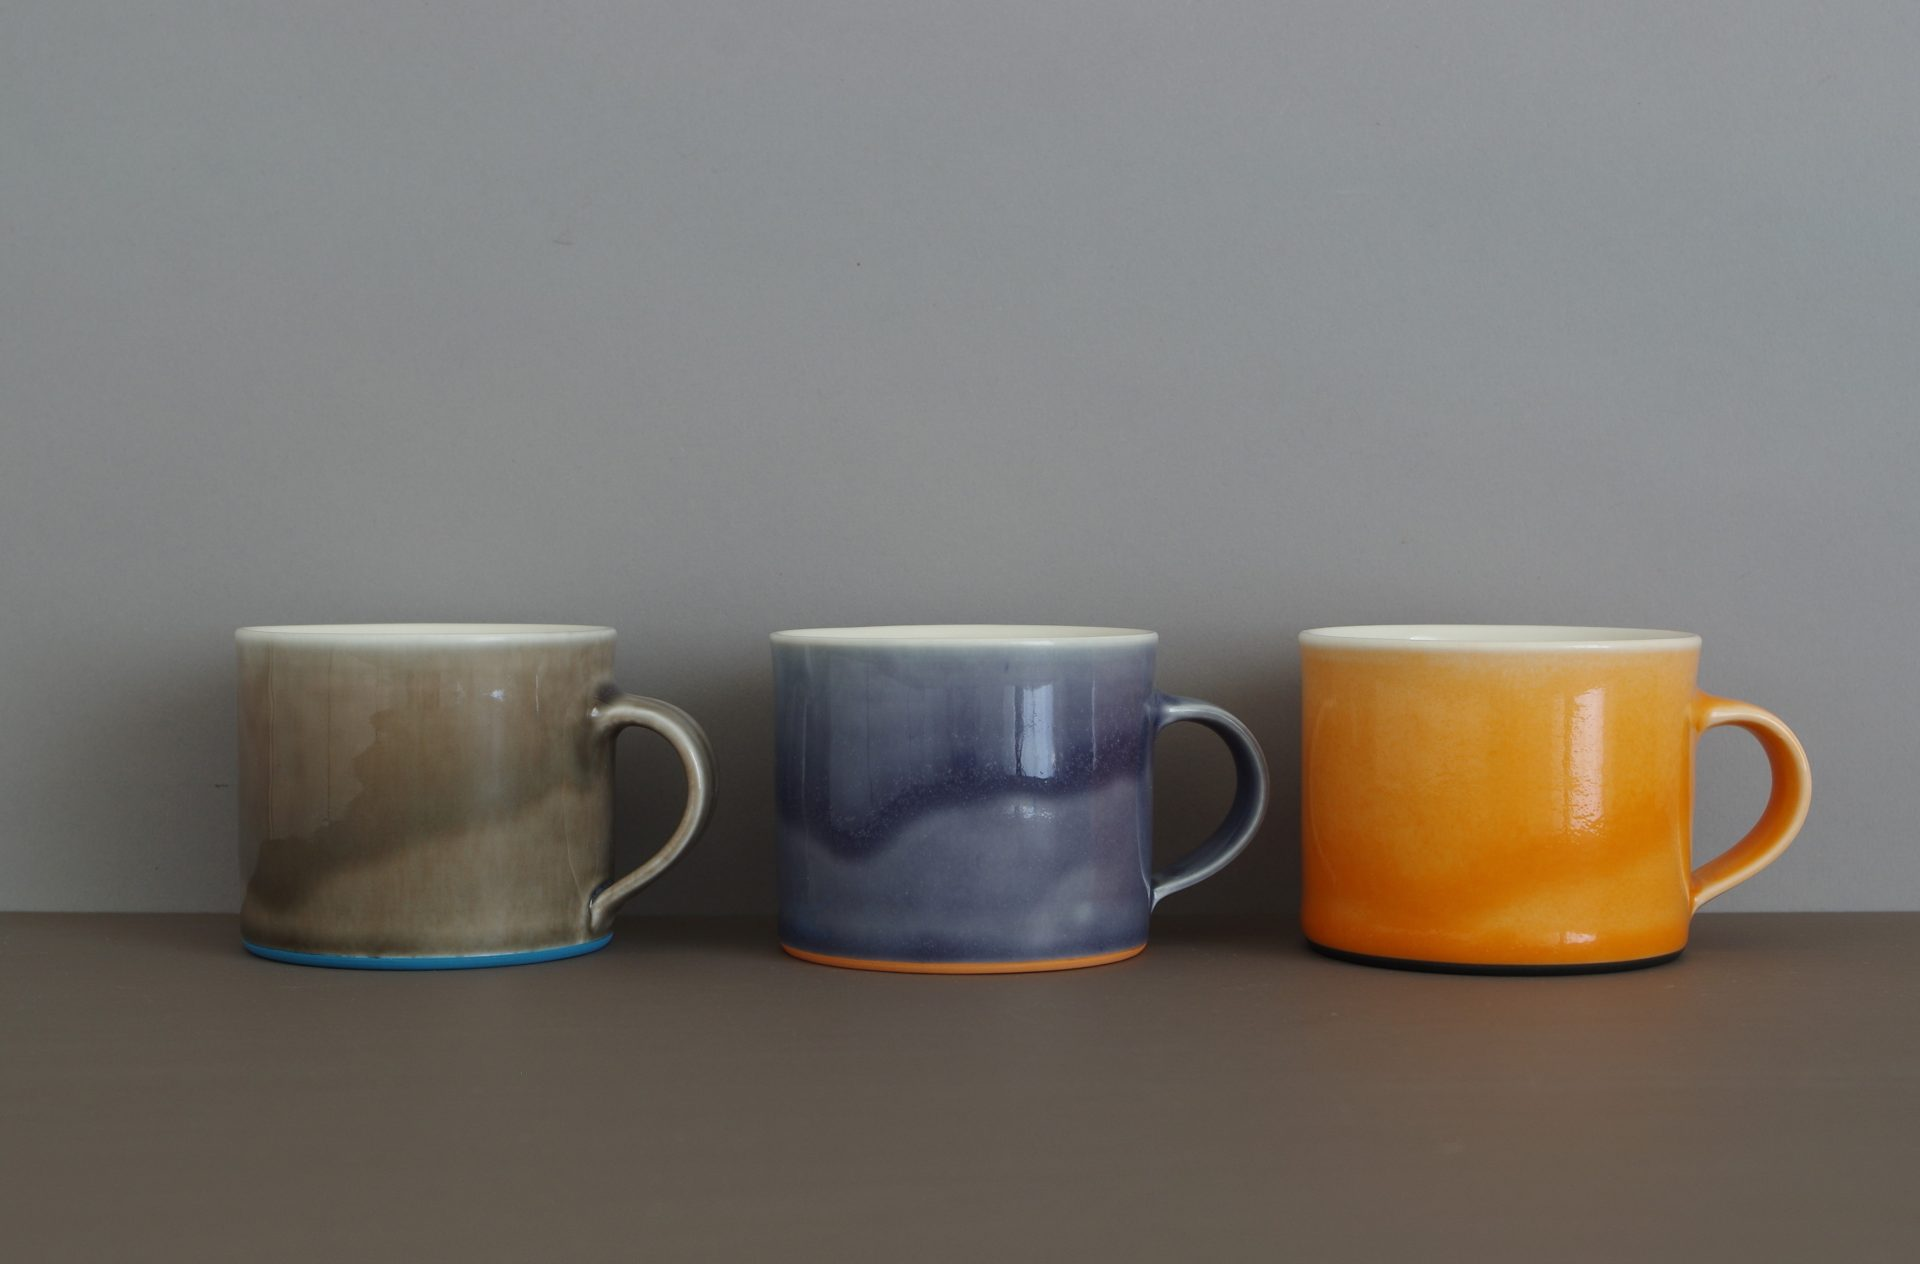 pond slate and orange coffee cups by James and Tilla Waters